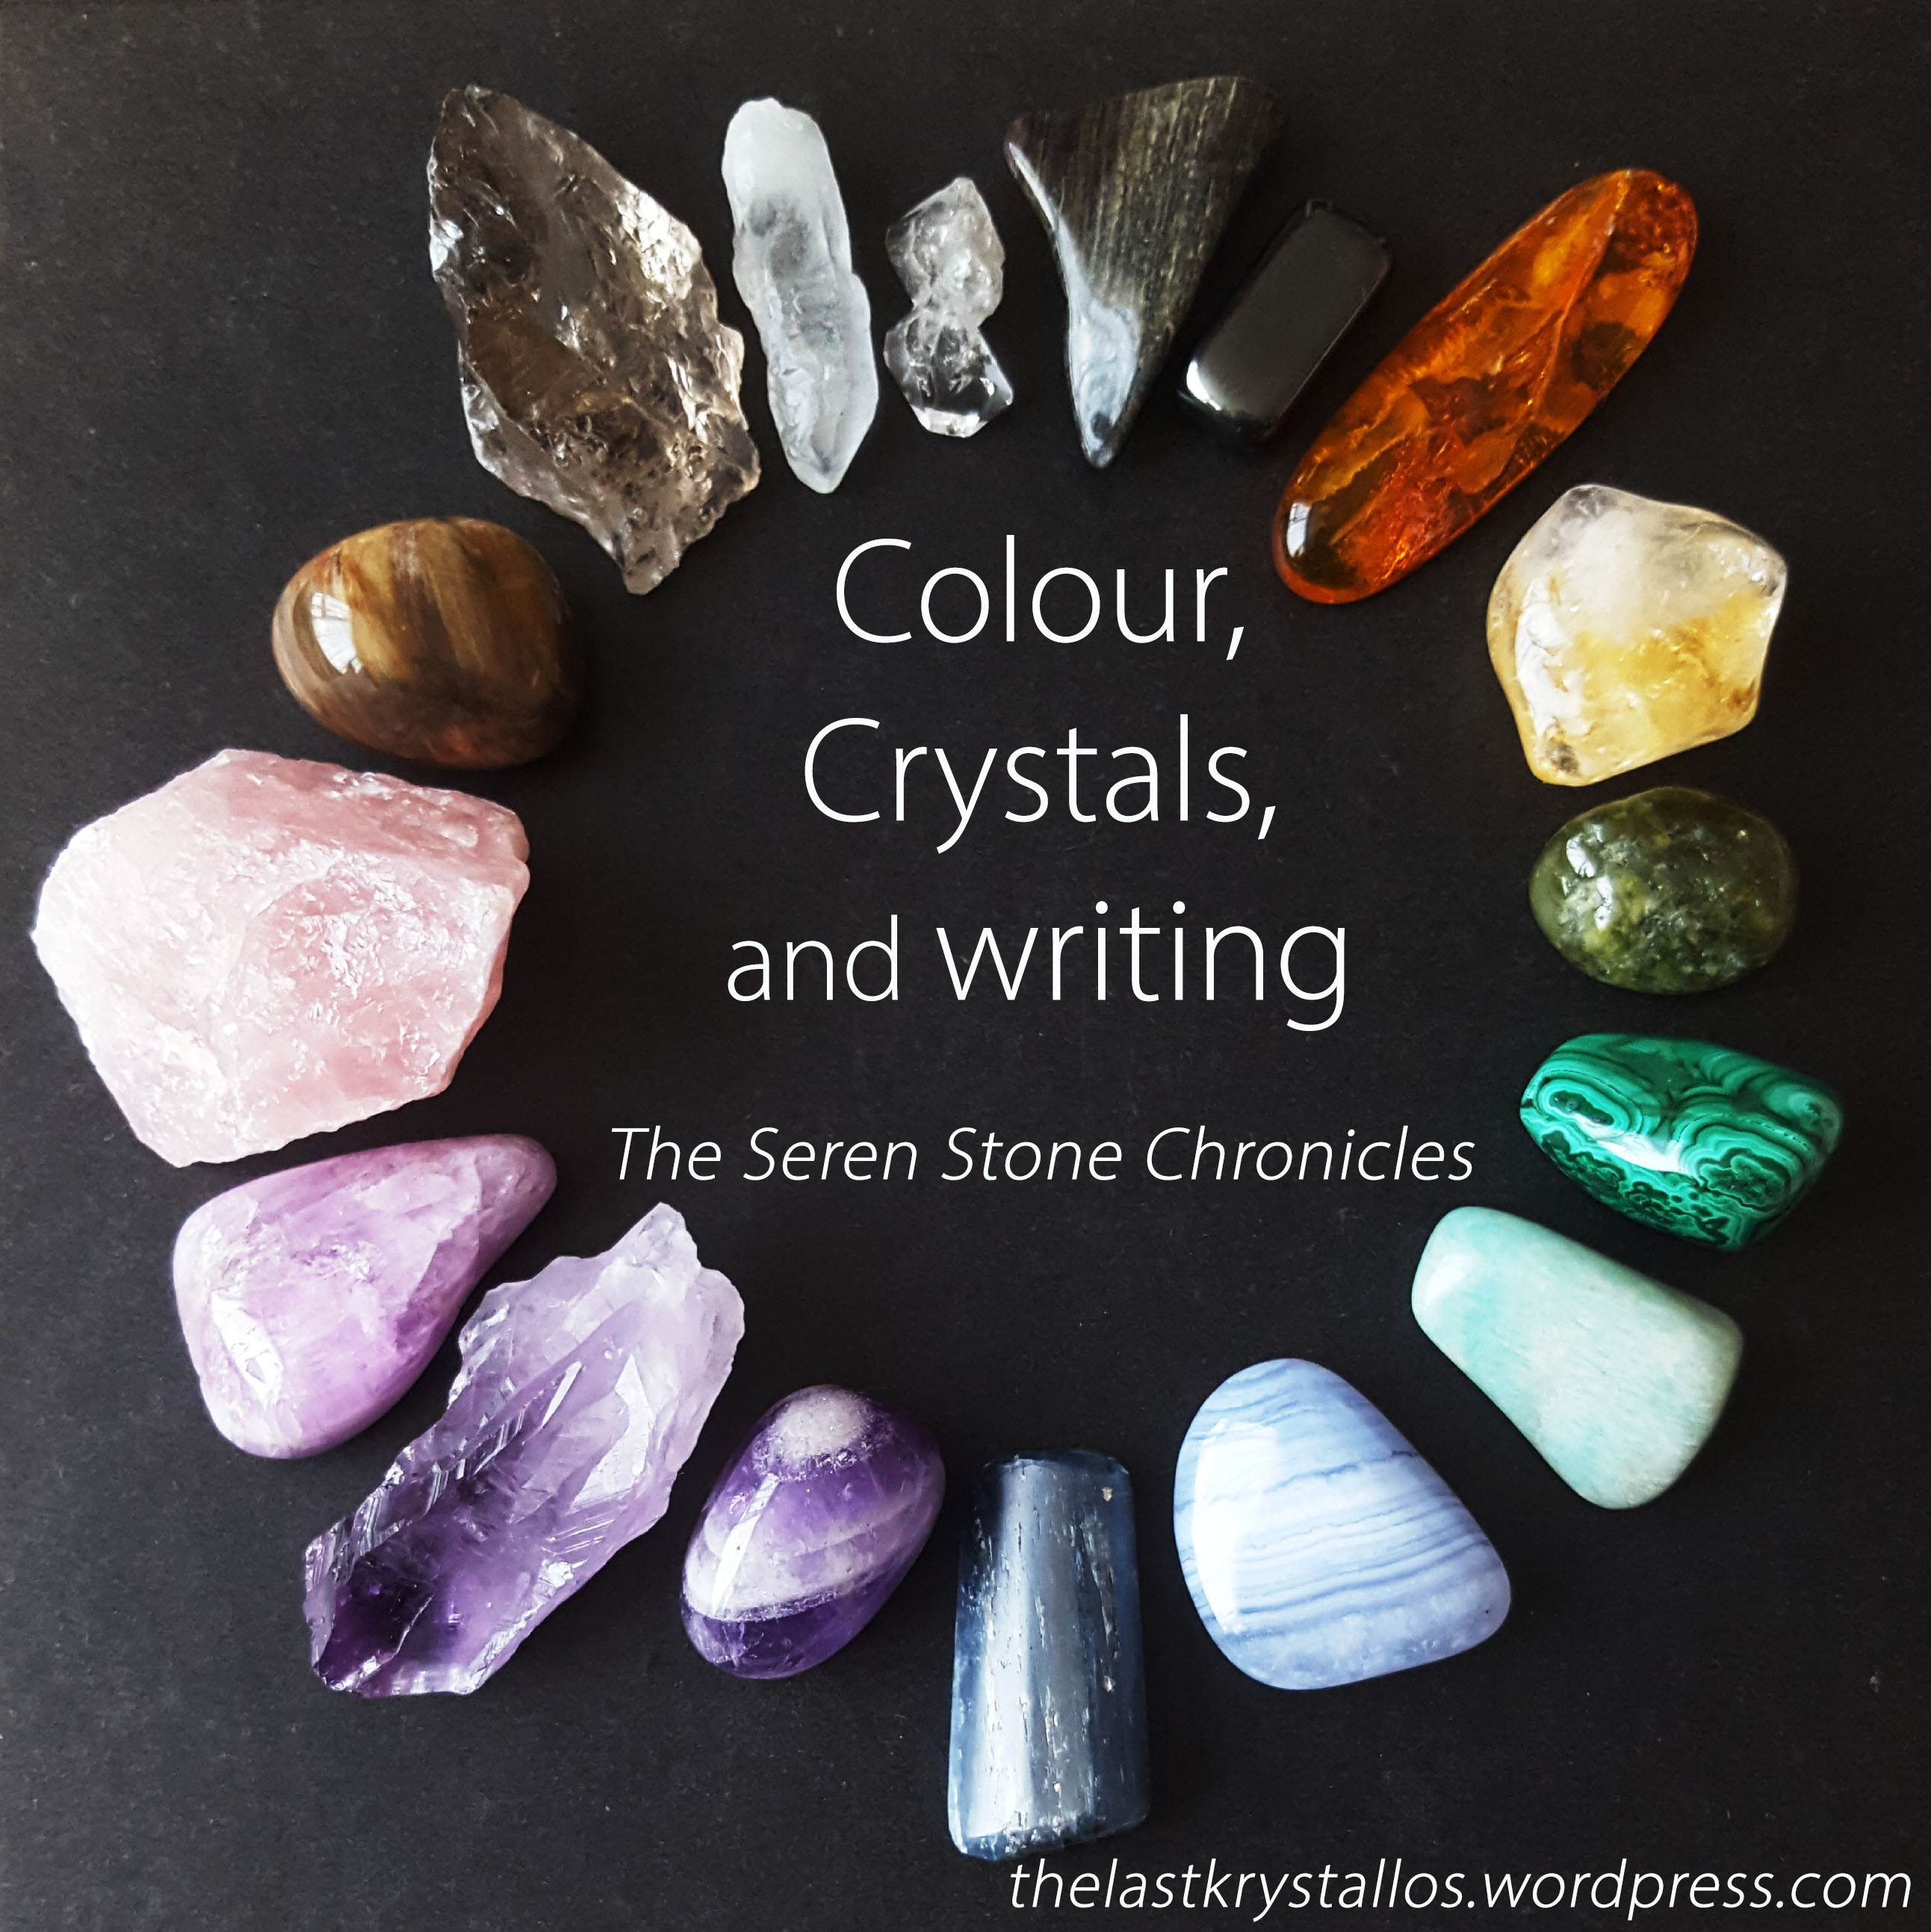 Colour, Crystals, and writing The Seren Stone Chronicles - The Last Krystallos